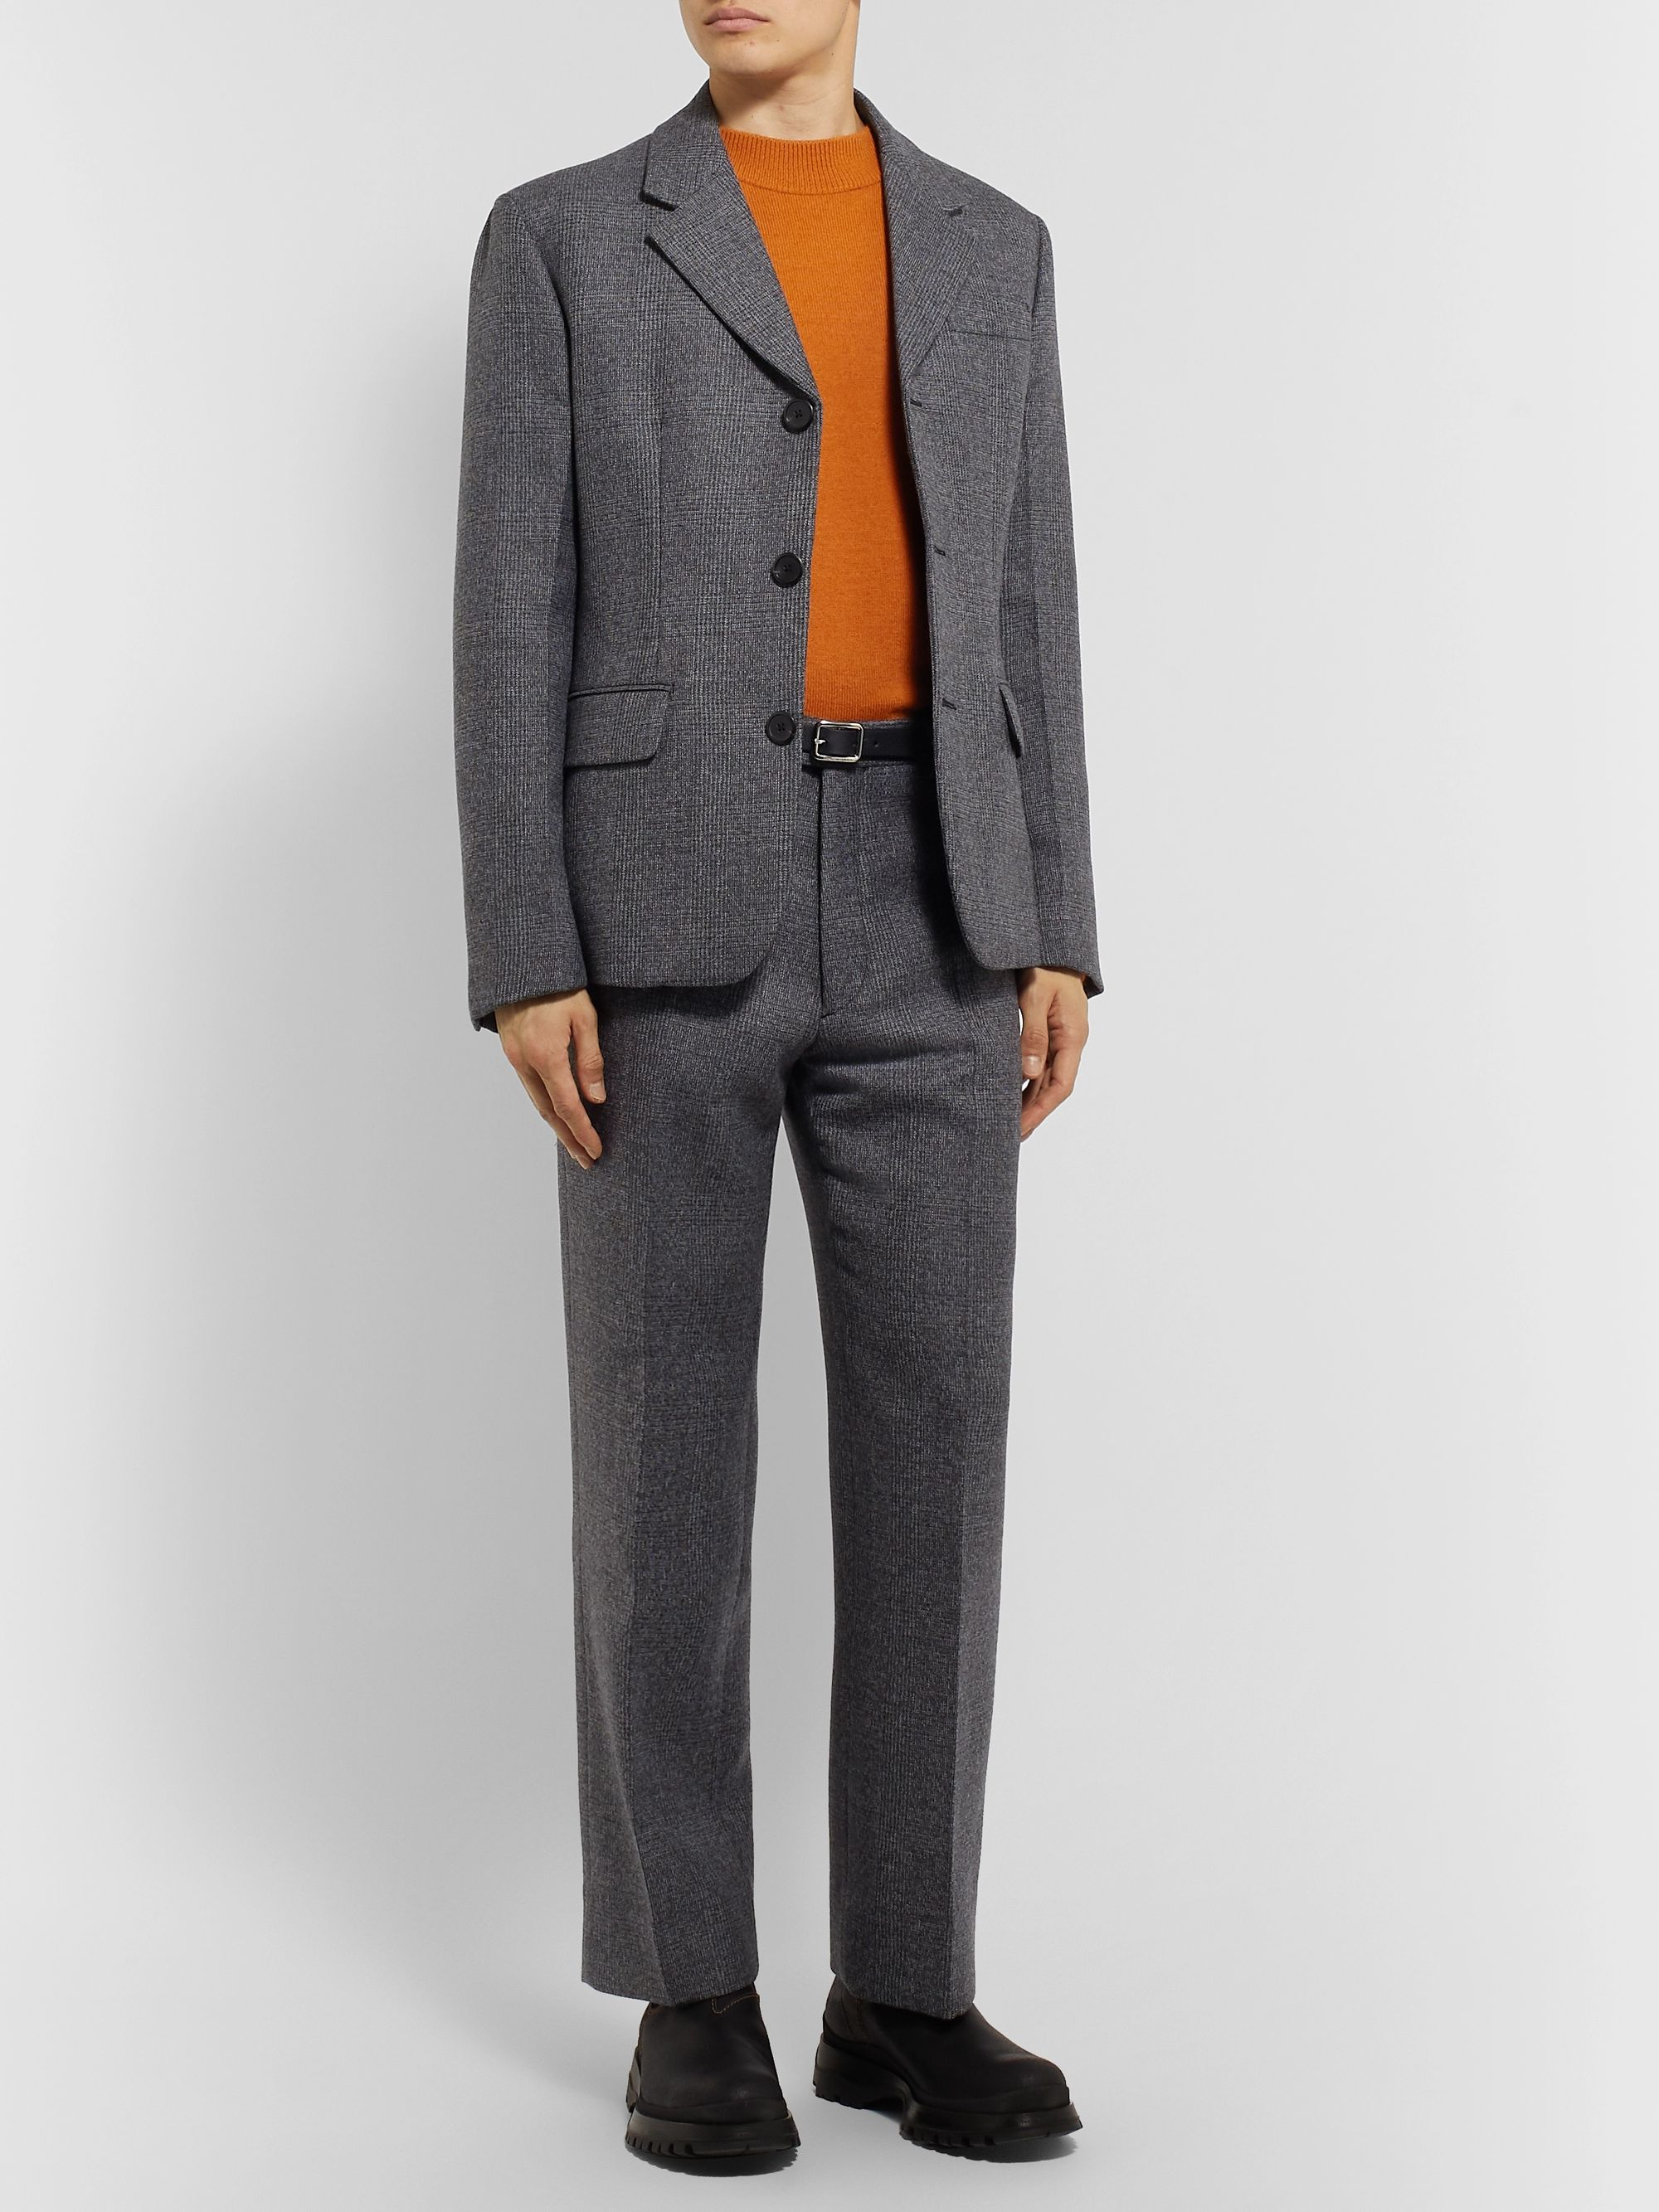 Prada Grey Wide-Leg Prince of Wales Checked Virgin Wool-Blend Suit Trousers